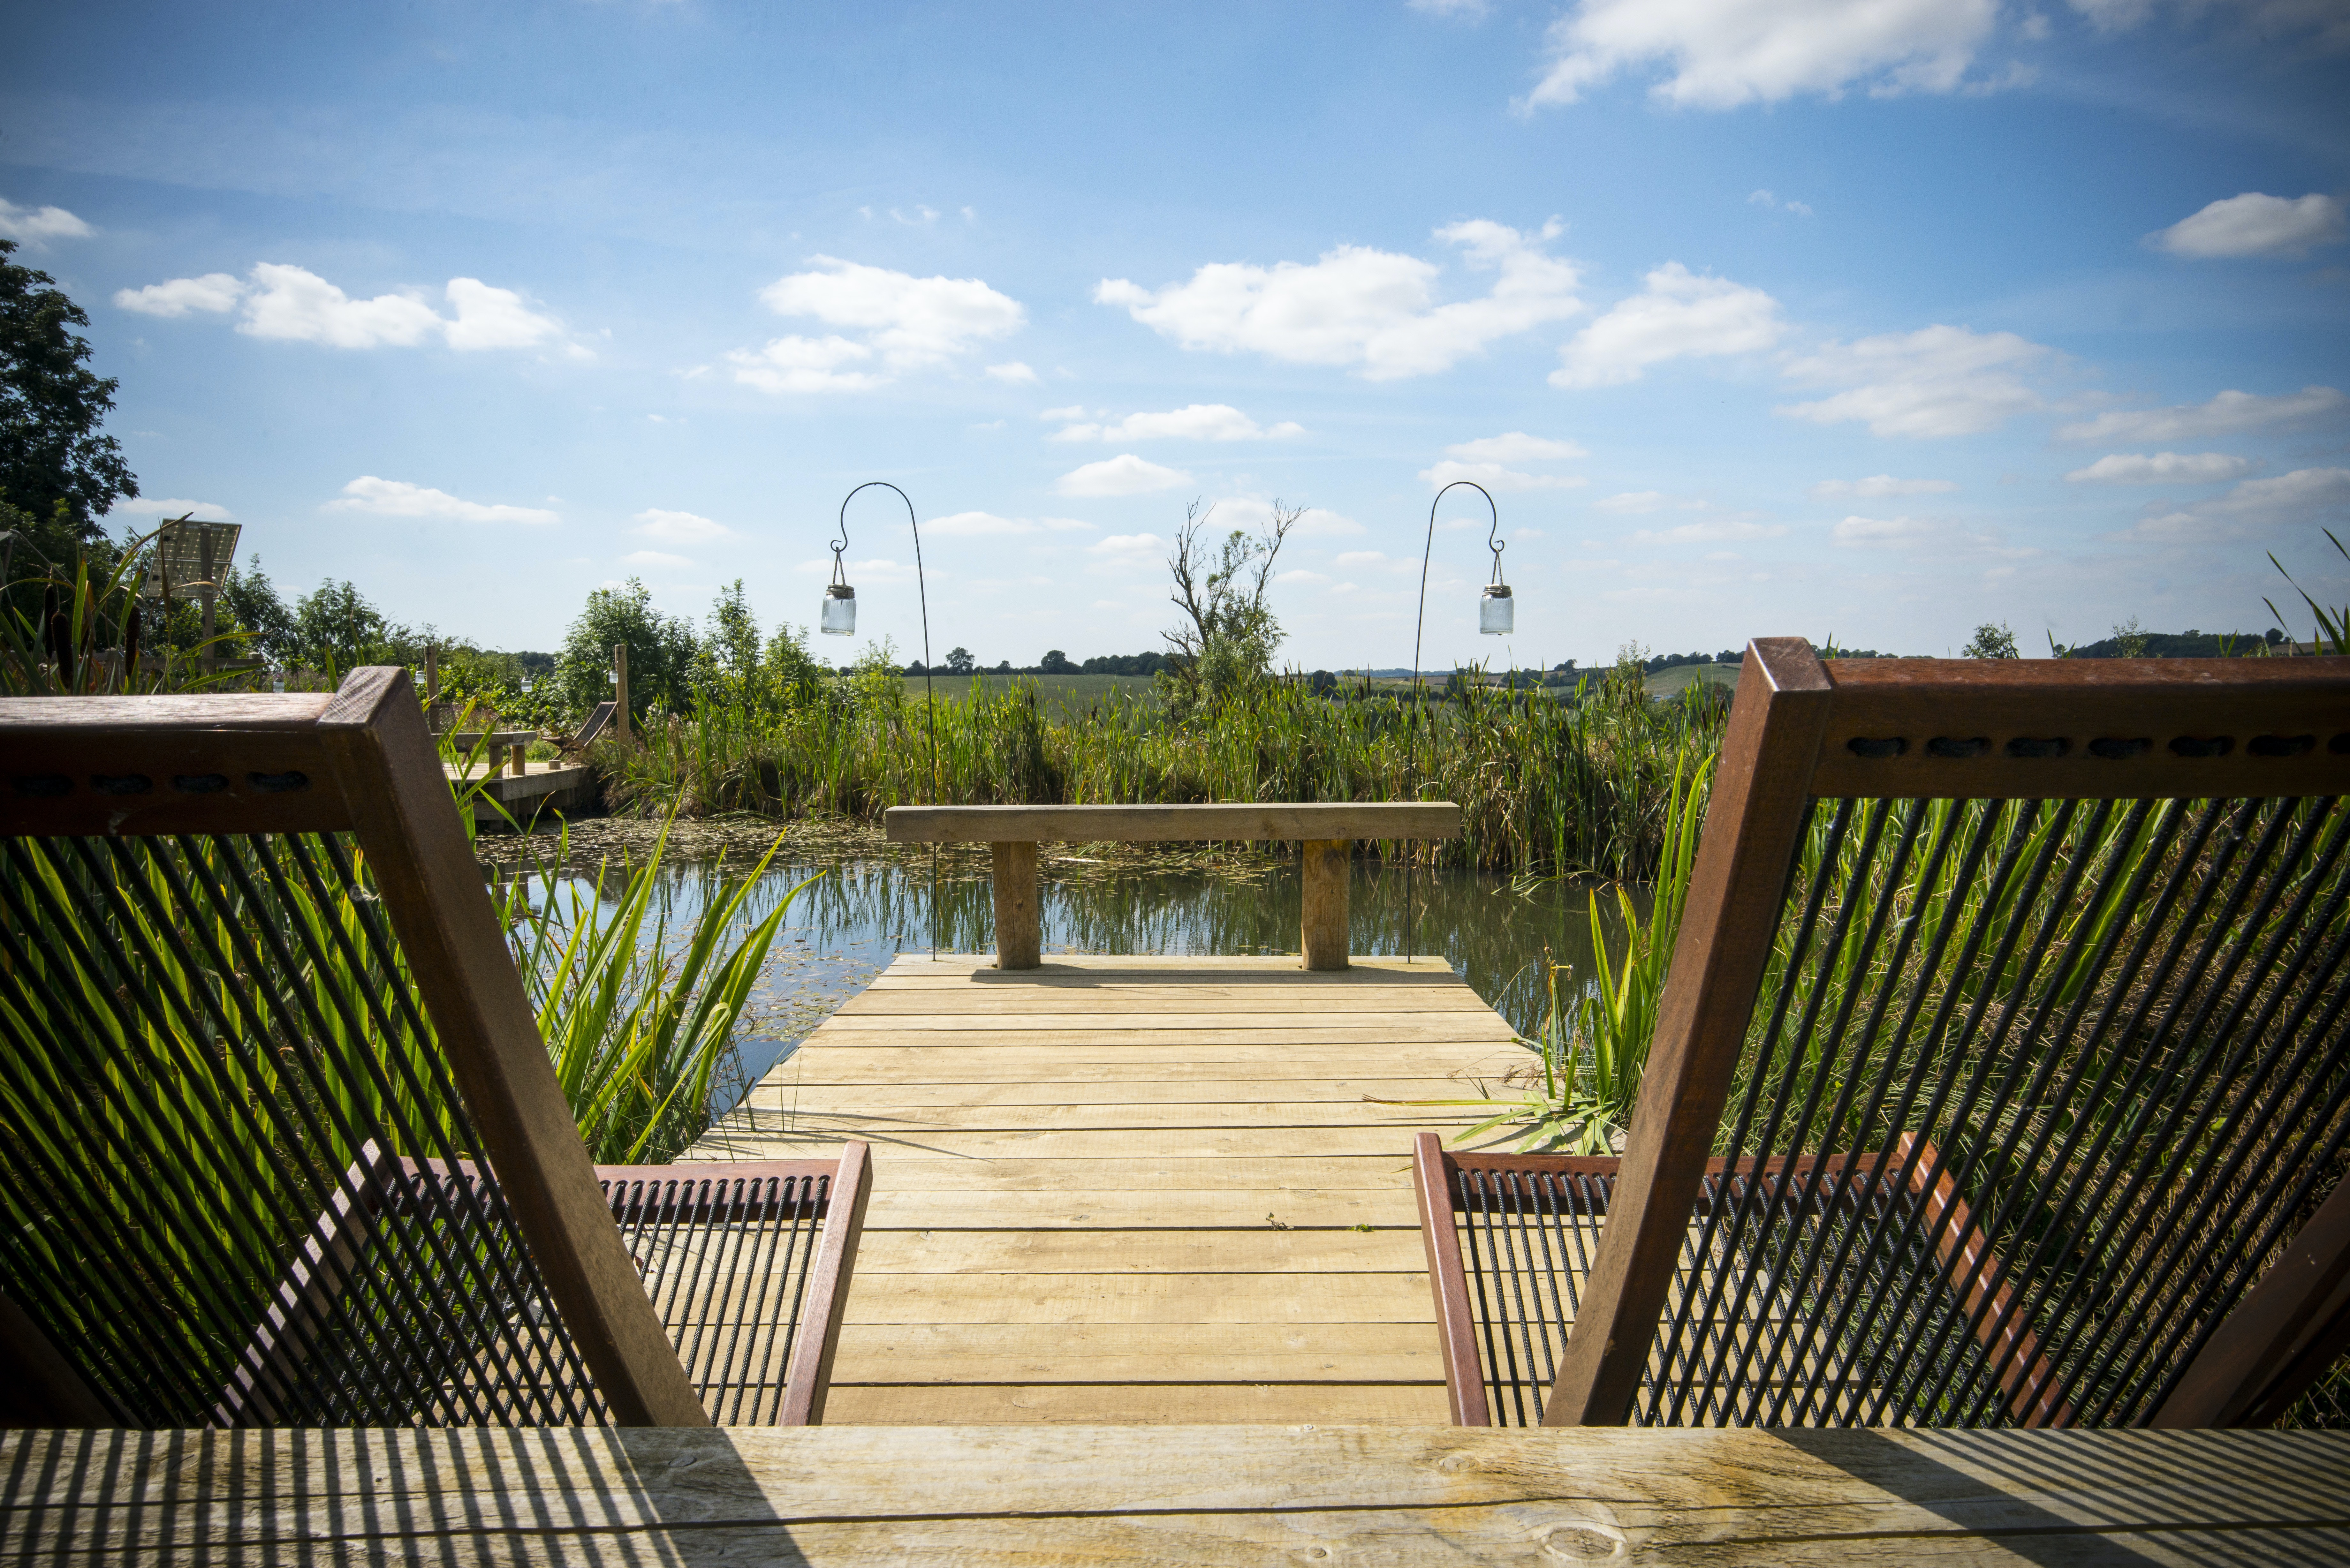 Rutland Water is near-by and has a wonderful array of outdoor activities to enjoy. & A Little Bit of Rough - Luxury Safari tents in Rutland | CoolStays